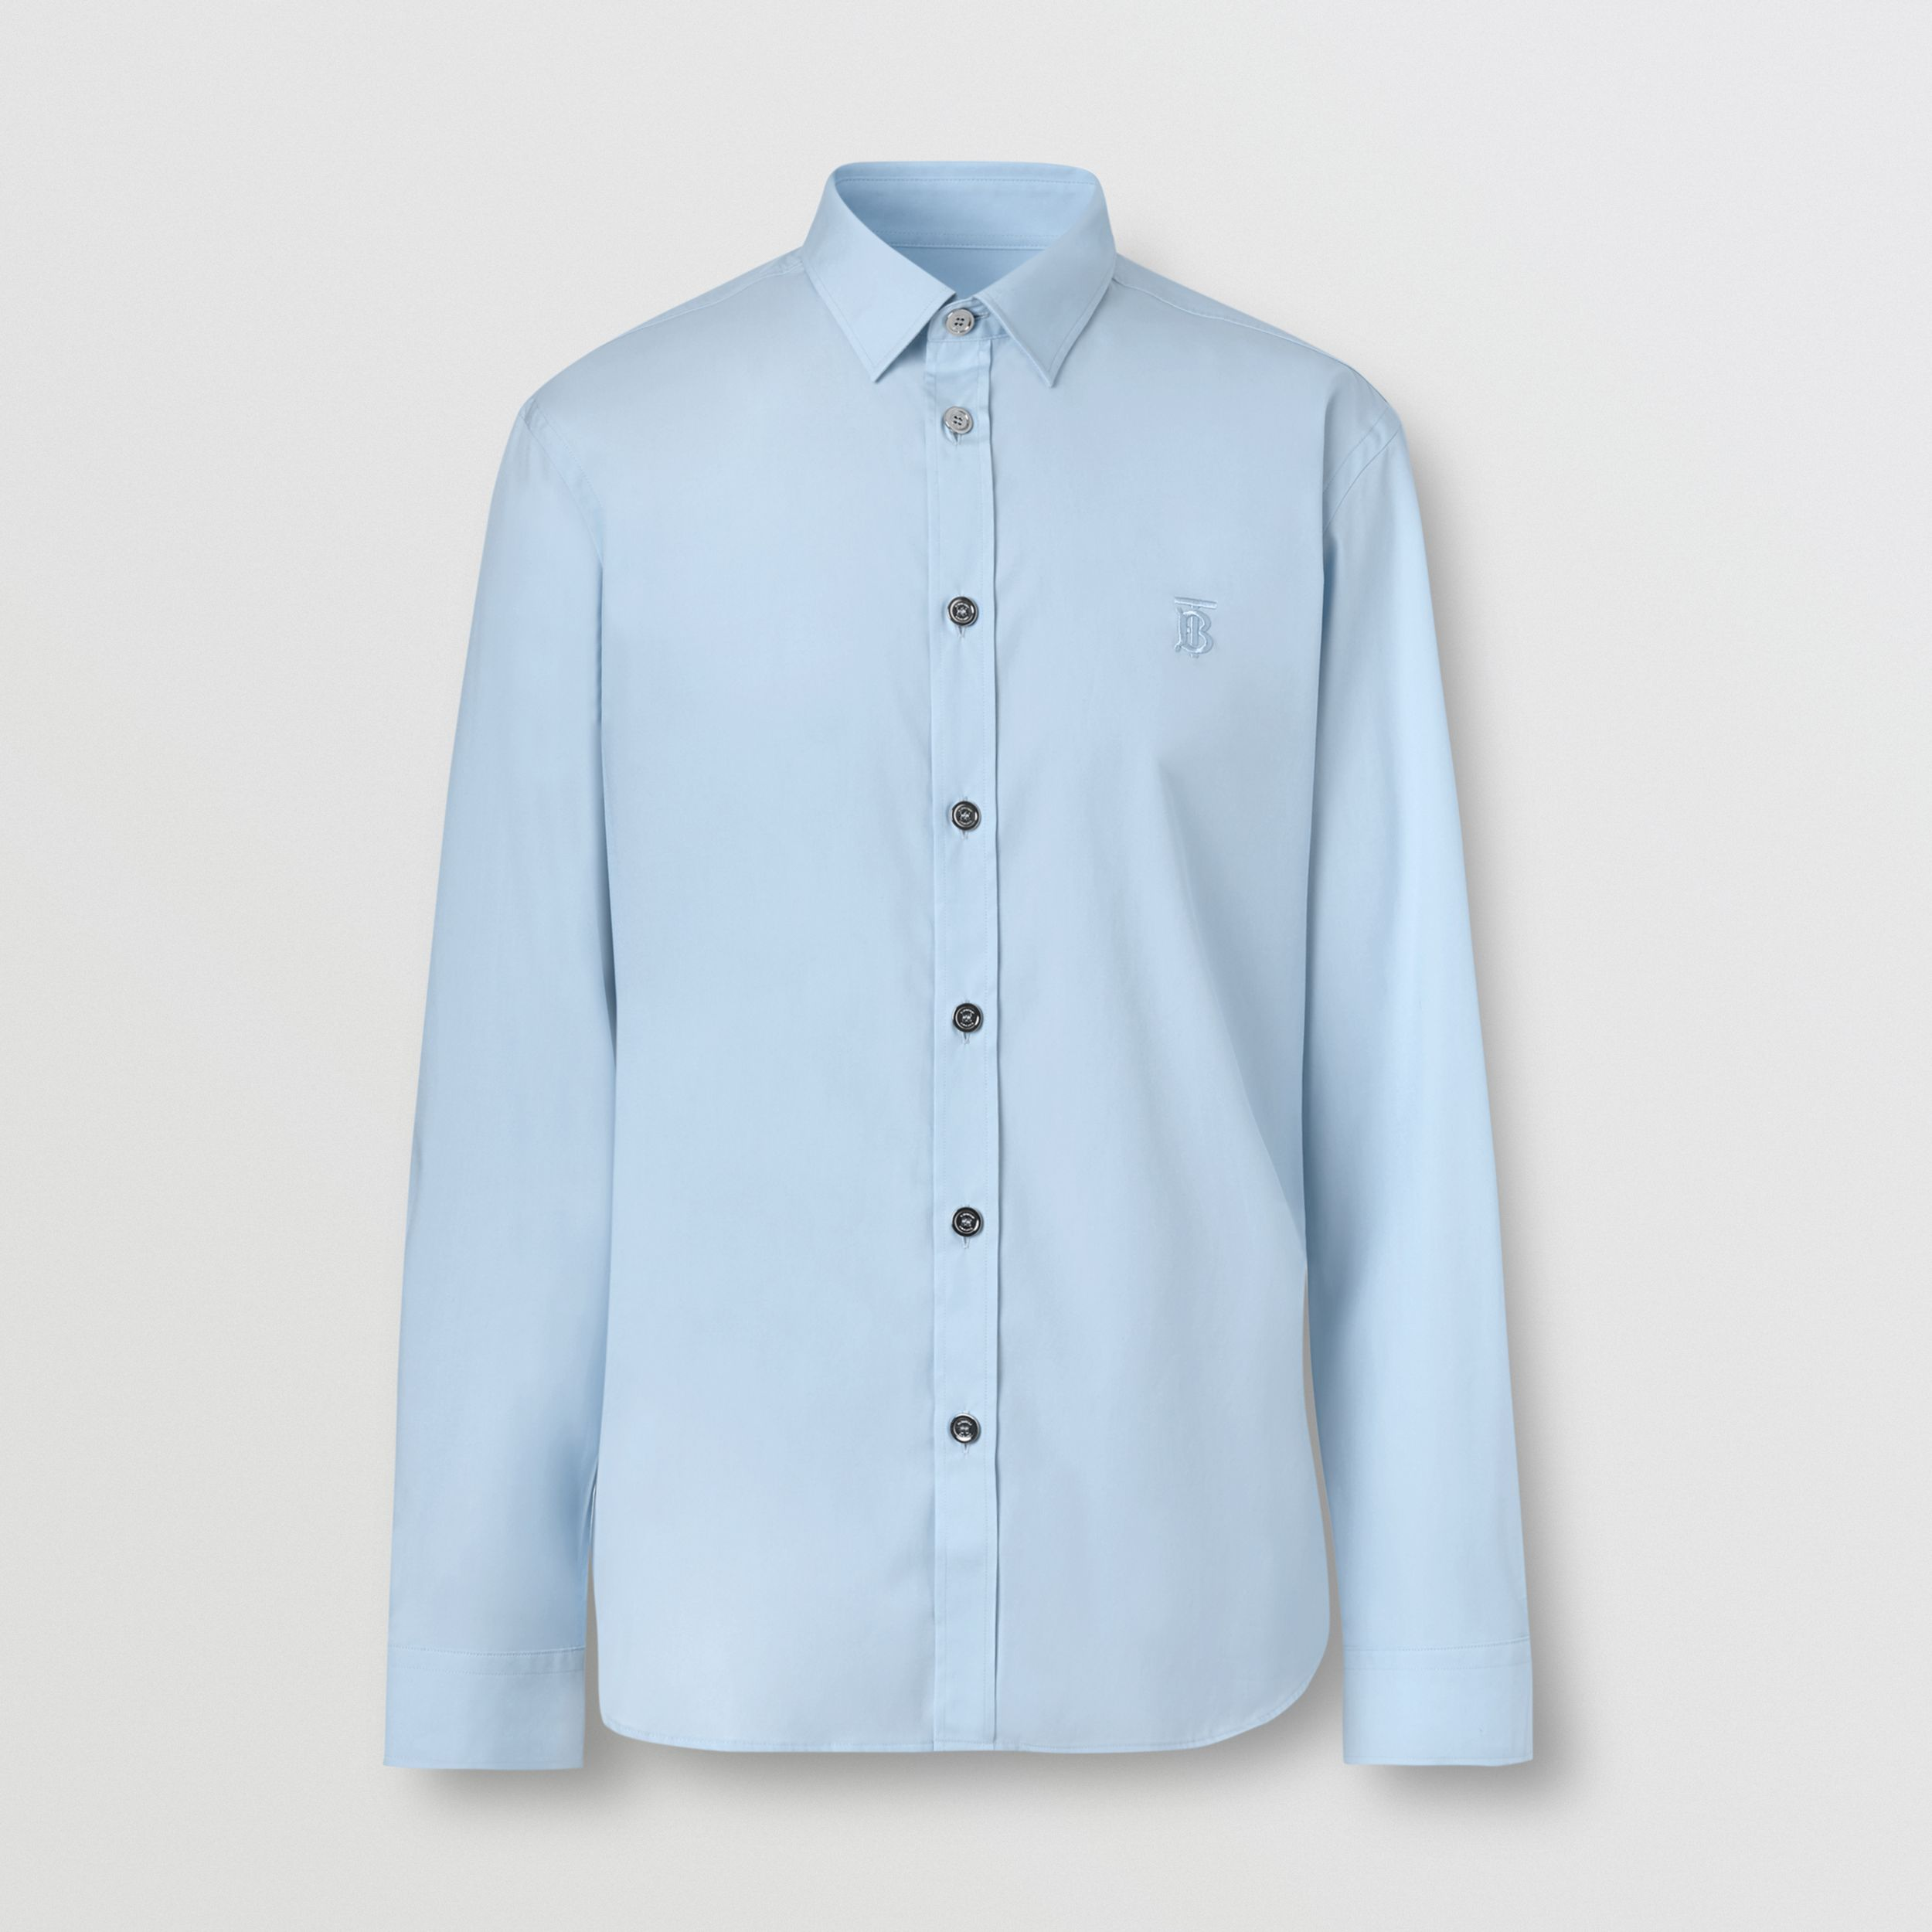 Monogram Motif Stretch Cotton Poplin Shirt in Pale Blue - Men | Burberry - 4